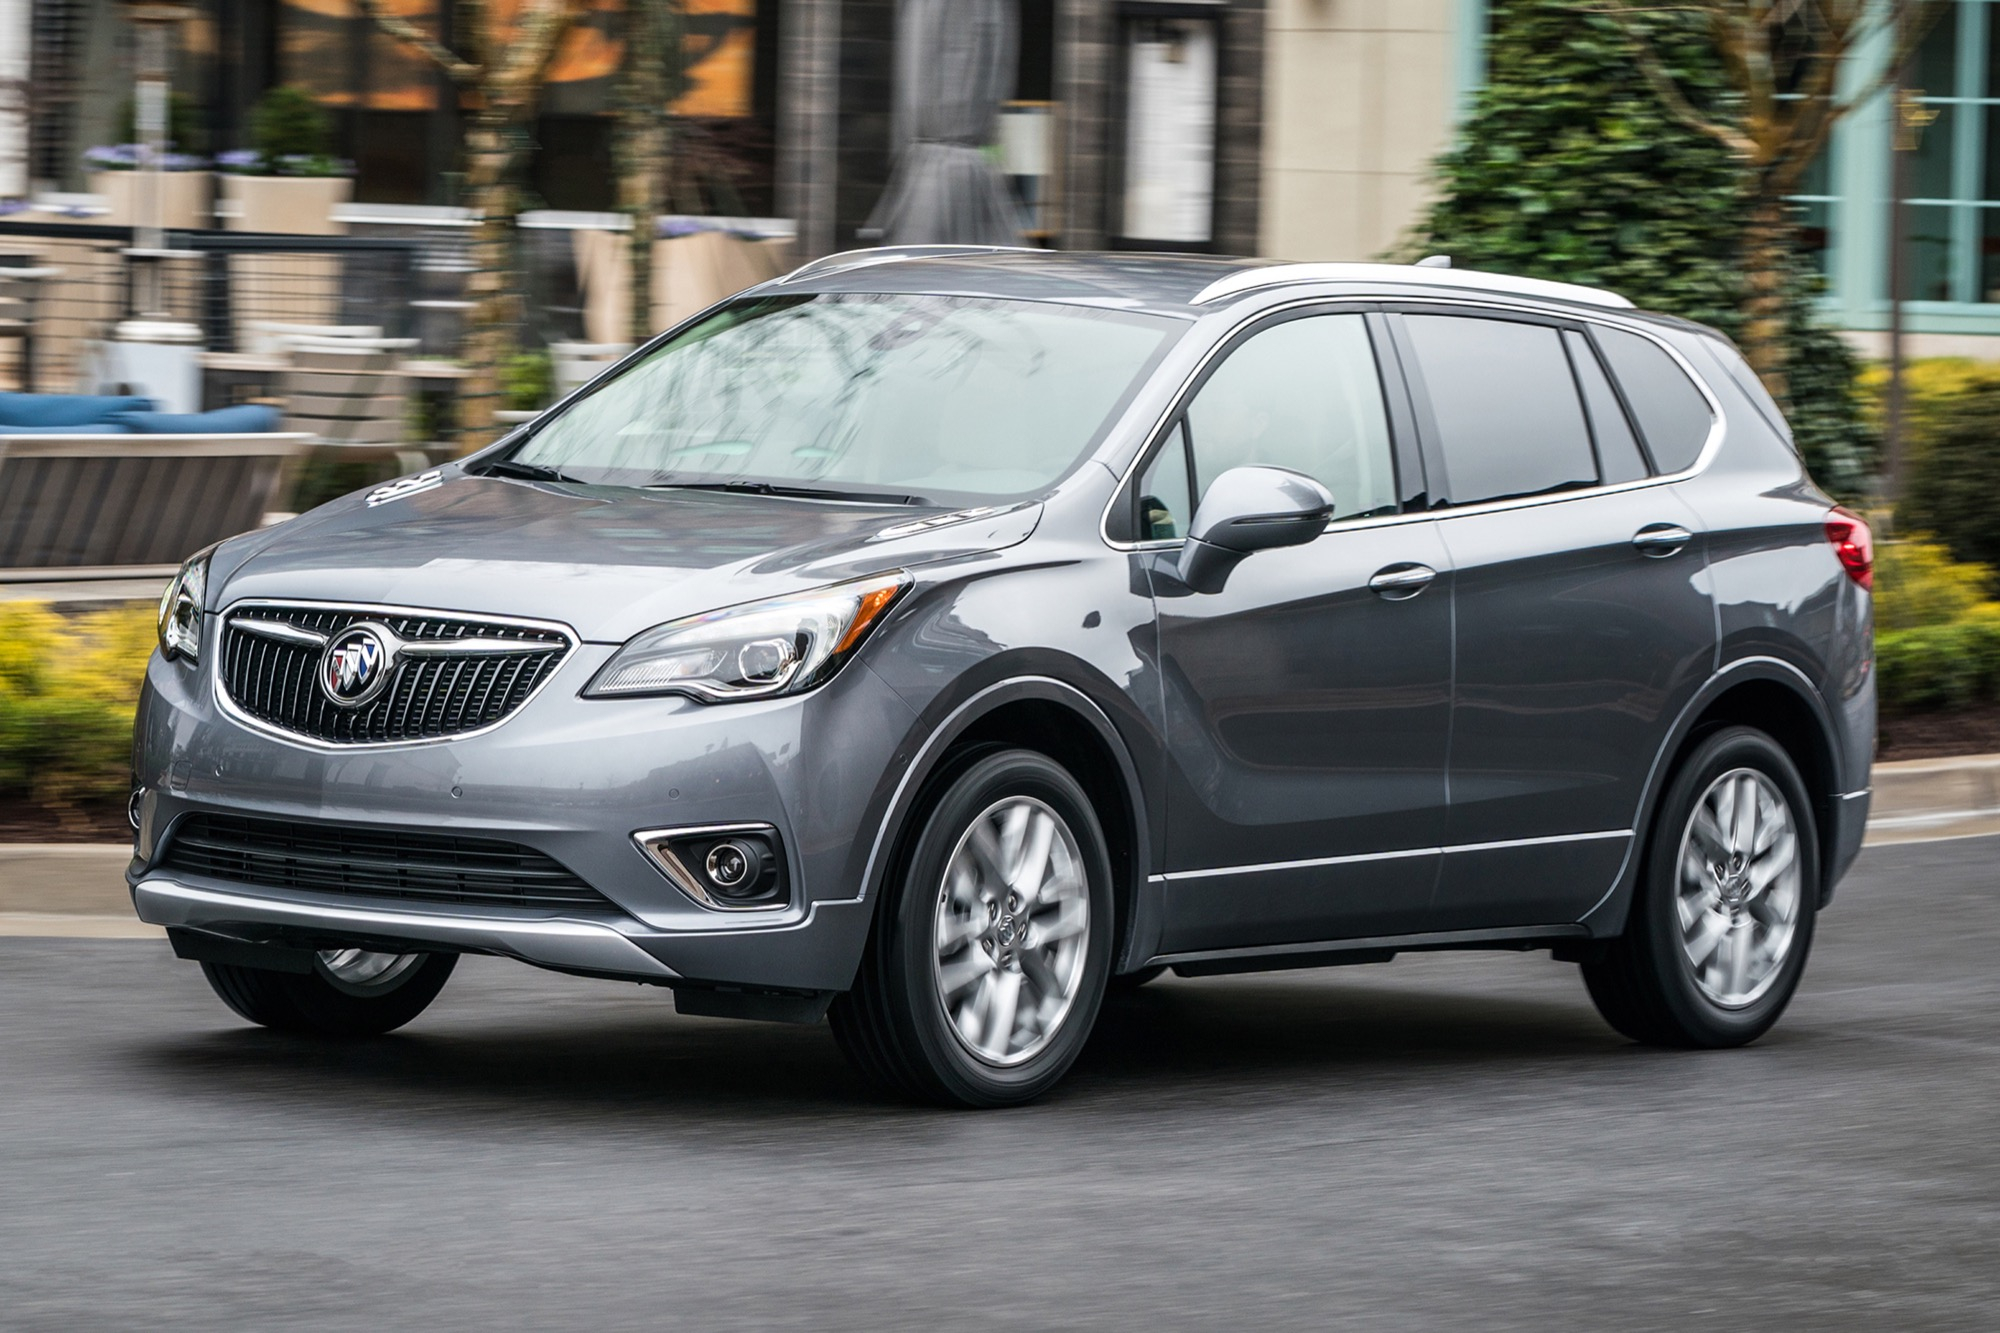 Buick Envision Discount Totals $5,000 February 2020 | Gm New 2021 Buick Envision Hp, Incentives, Infotainment Manual